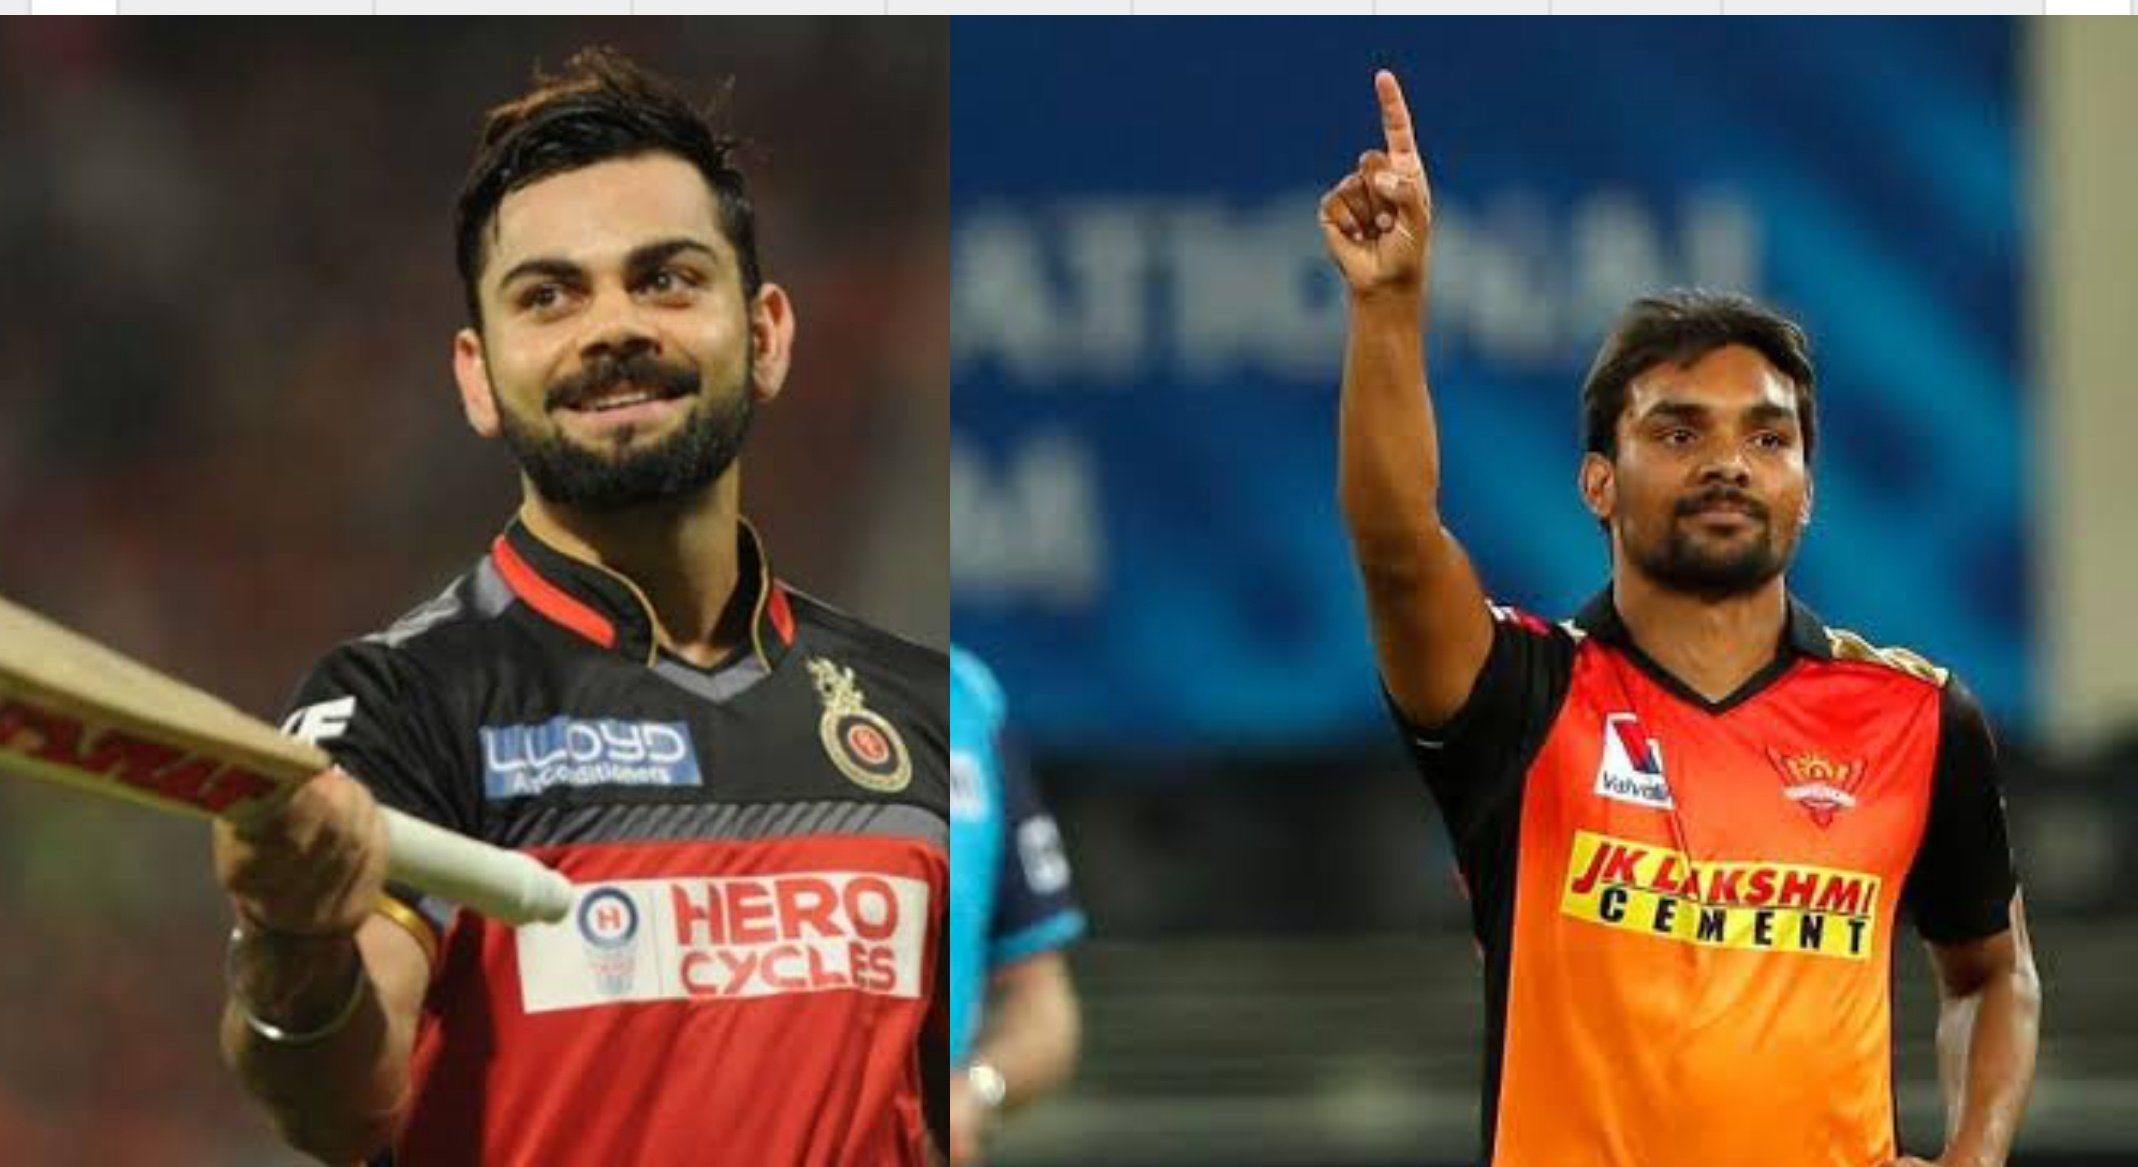 IPL 2021: SRH vs RCB Team News, Predicted Playing 11 and Head-To-Head Stats